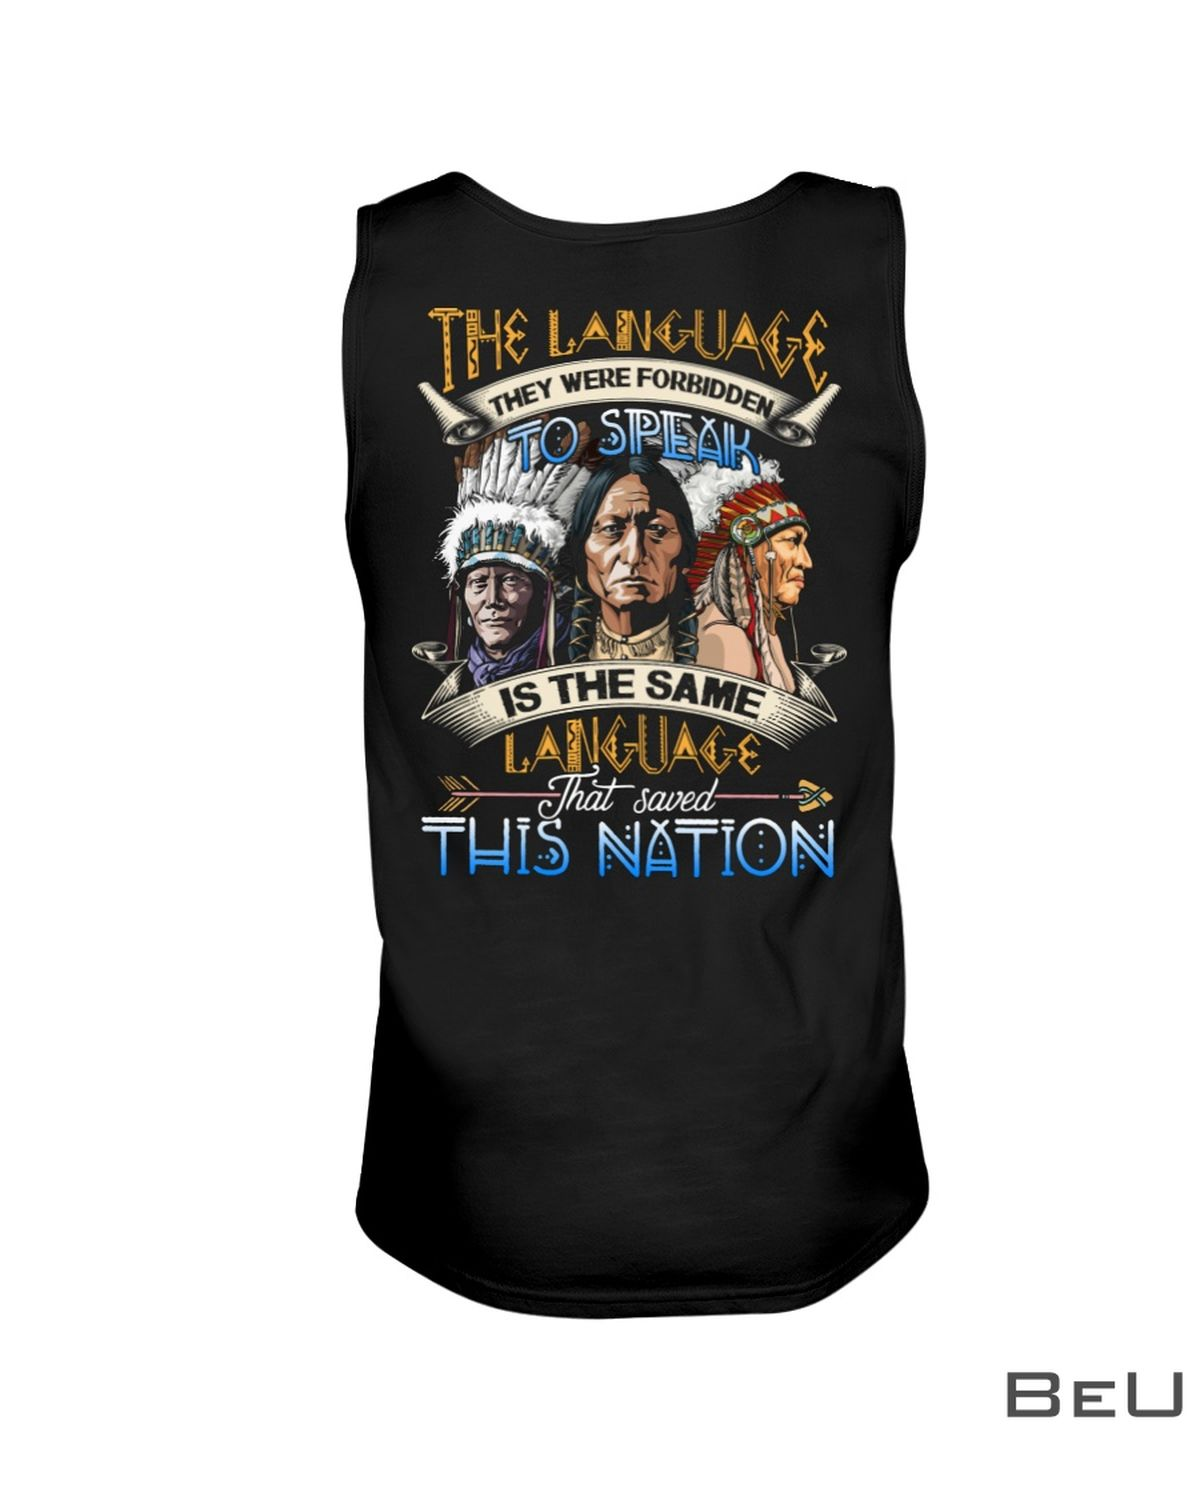 The Language They Were Forbidden To Speak Is The Same Language That Saved This Nation Shirt x